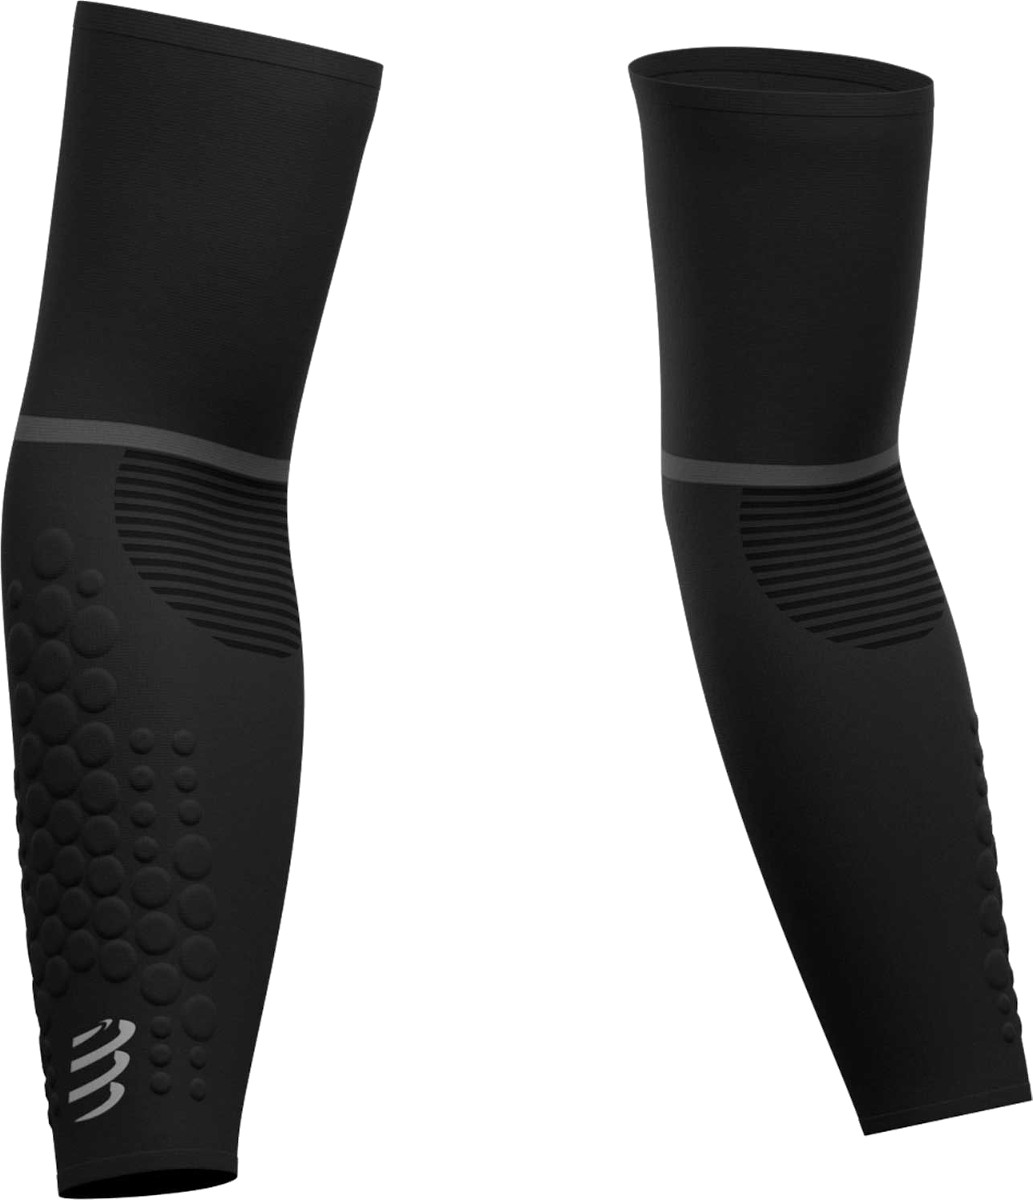 Überschuhe Compressport Armforce Ultralight 2020